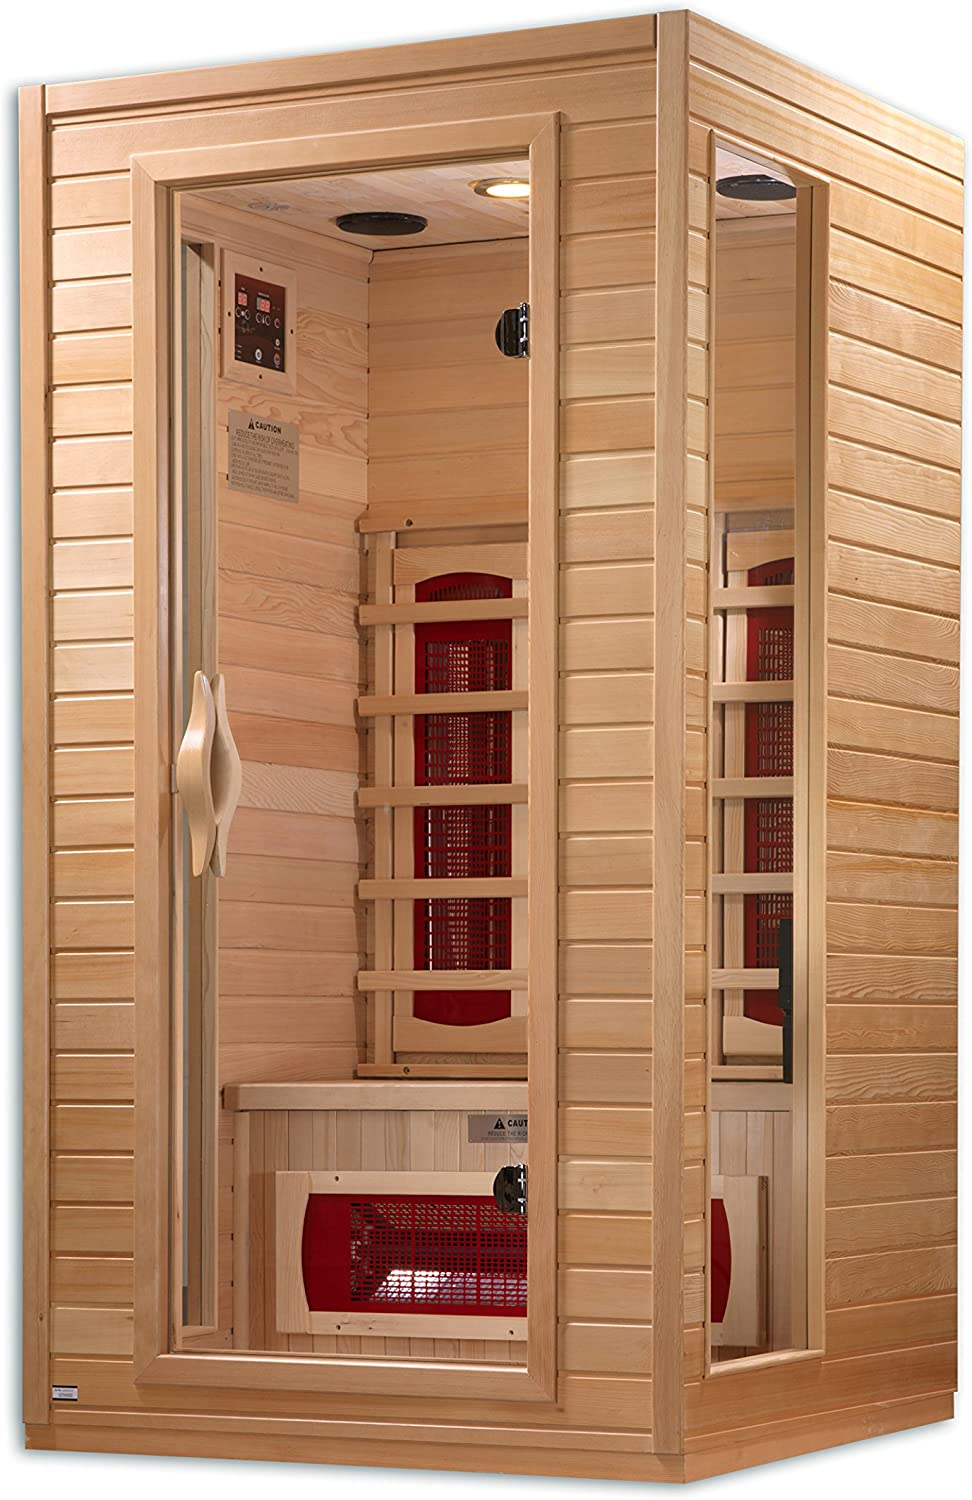 Dynamic Alicante 1-2-person Bio Ceramic Far Infrared Sauna